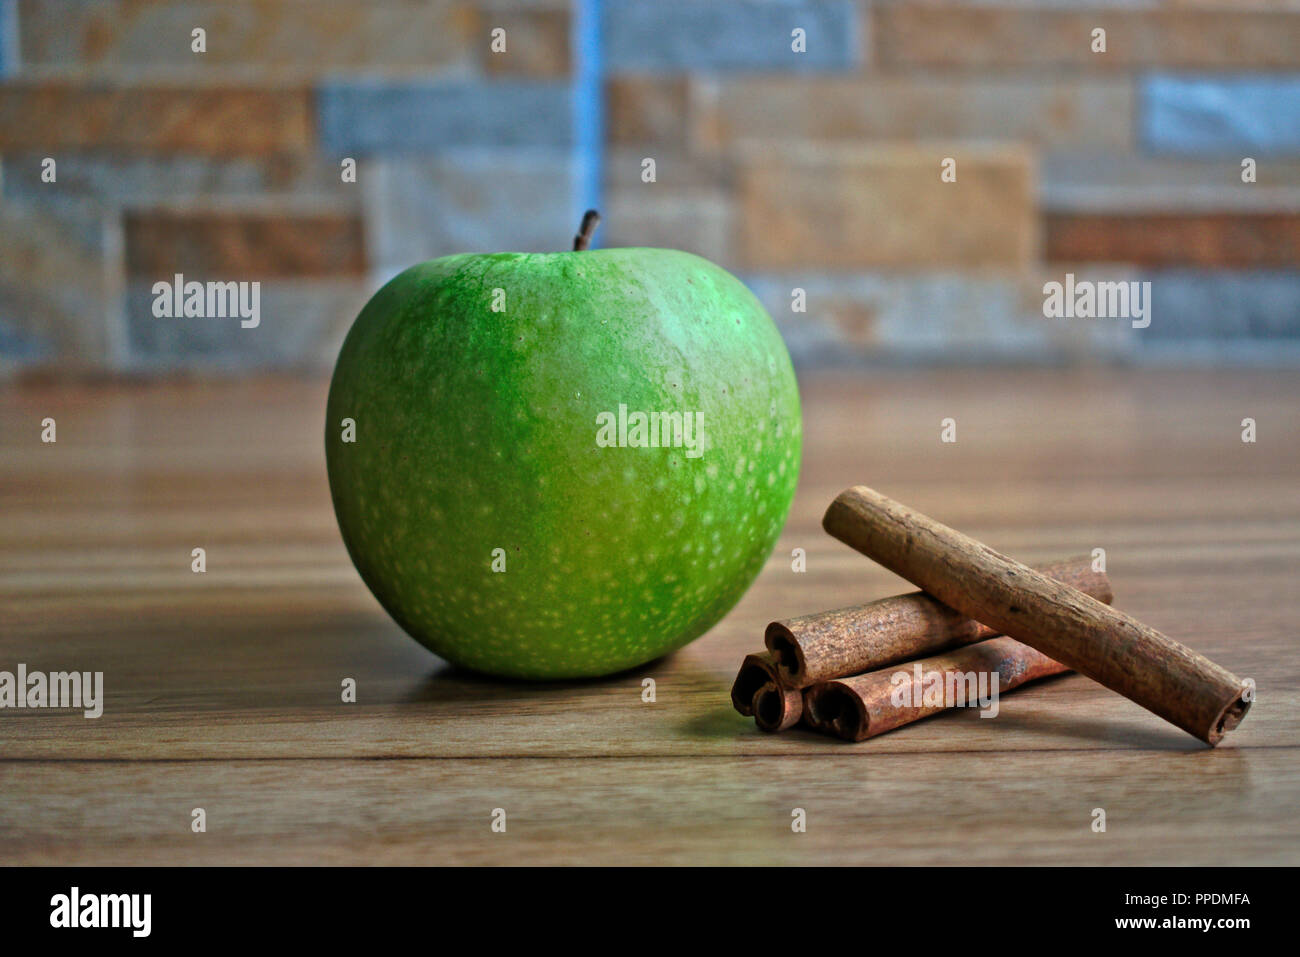 Green apple and cinnamon sticks on a wooden table - Stock Image